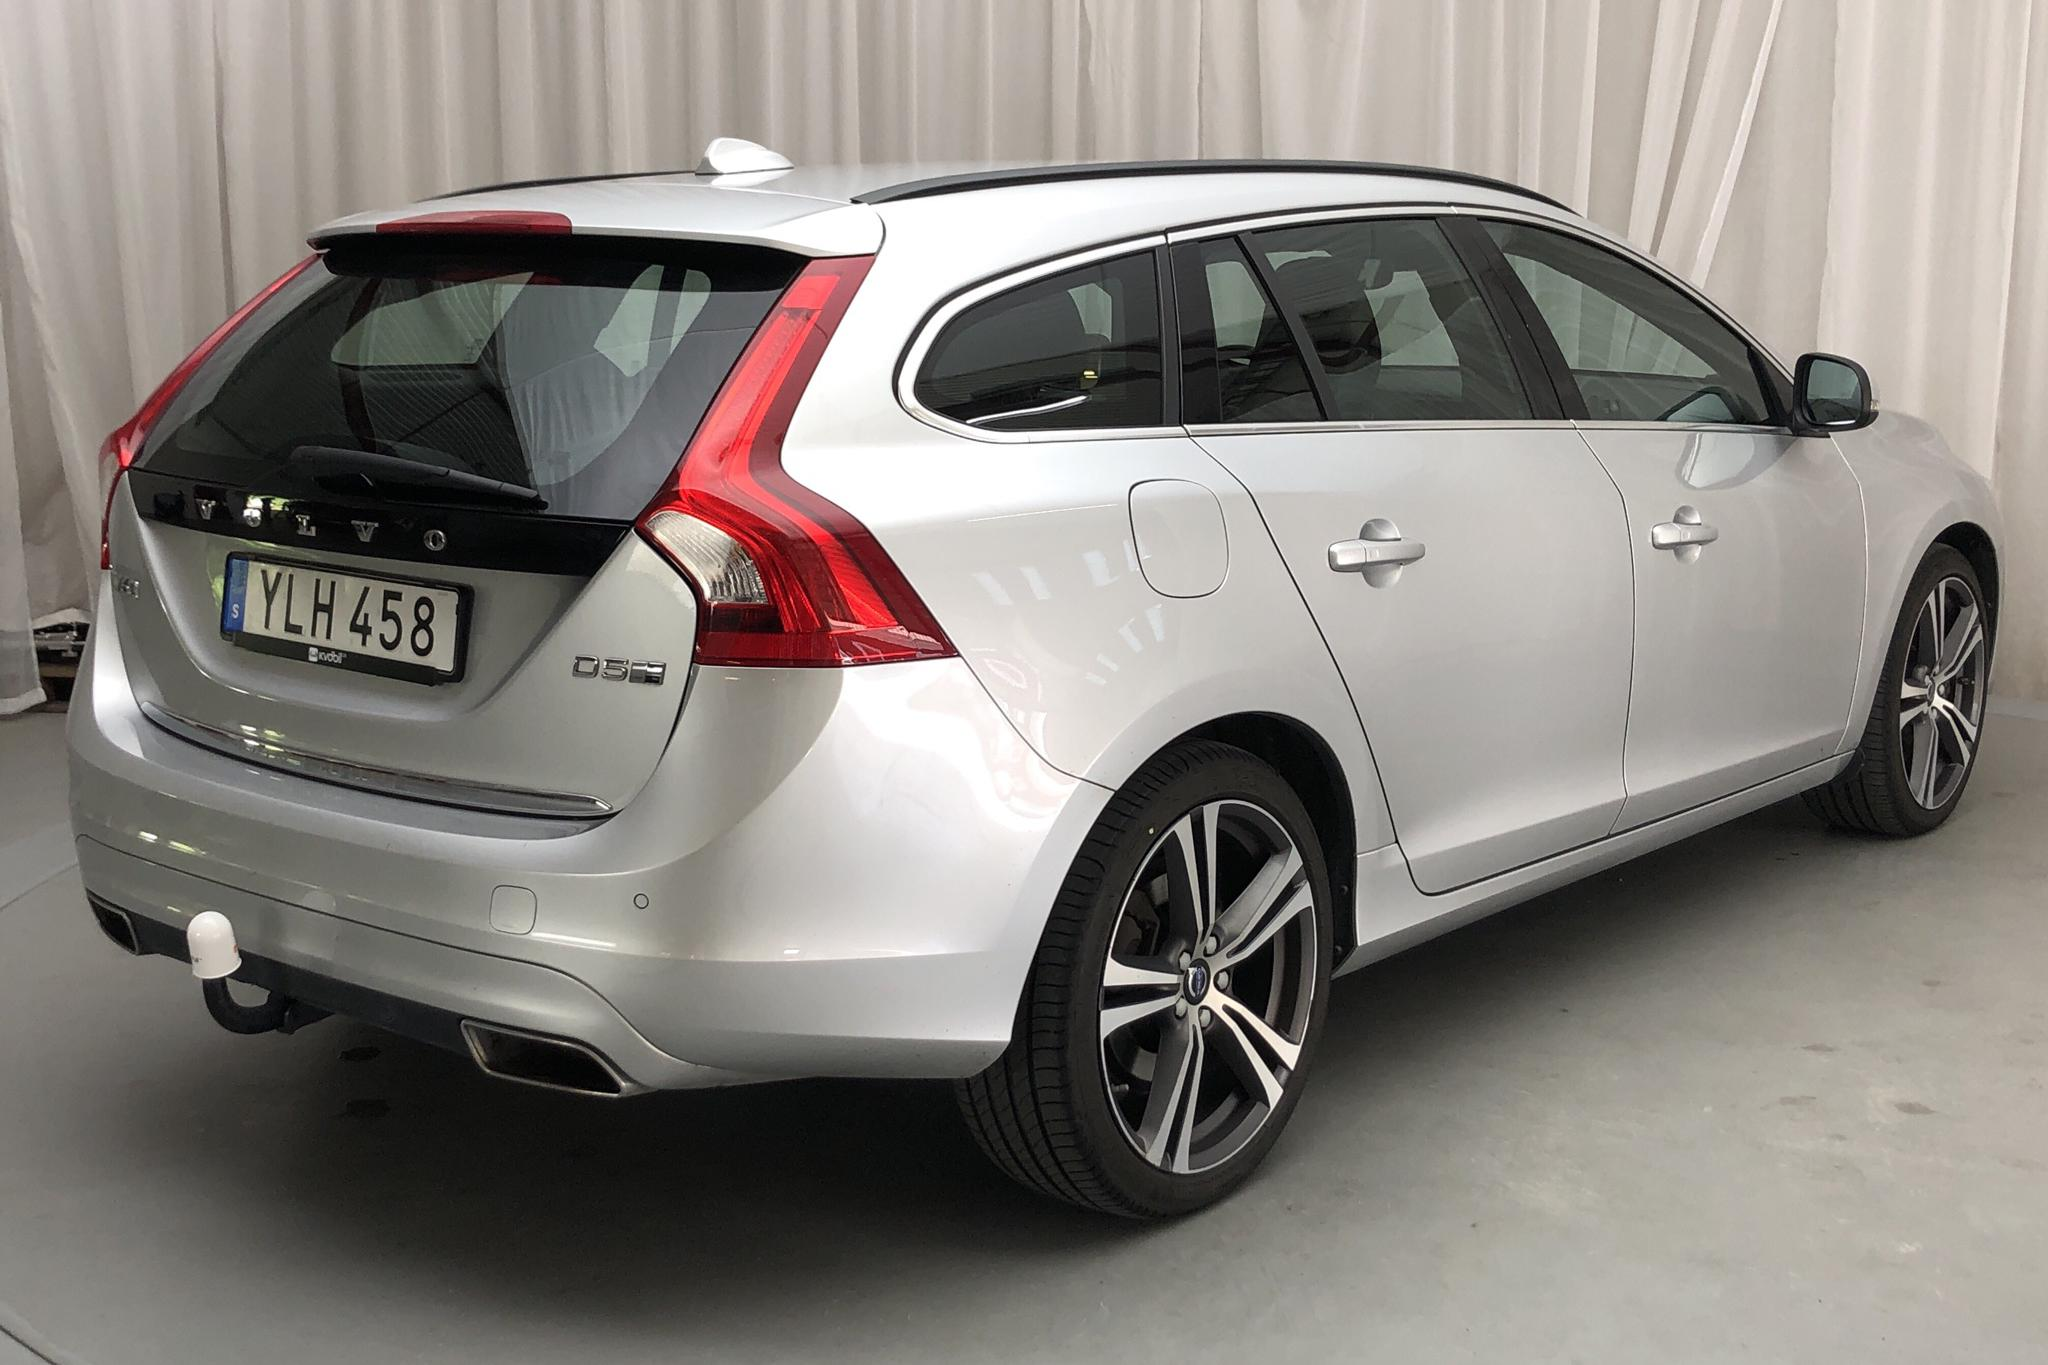 Volvo V60 D5 AWD Twin Engine (163hk) - 92 020 km - Automatic - silver - 2018